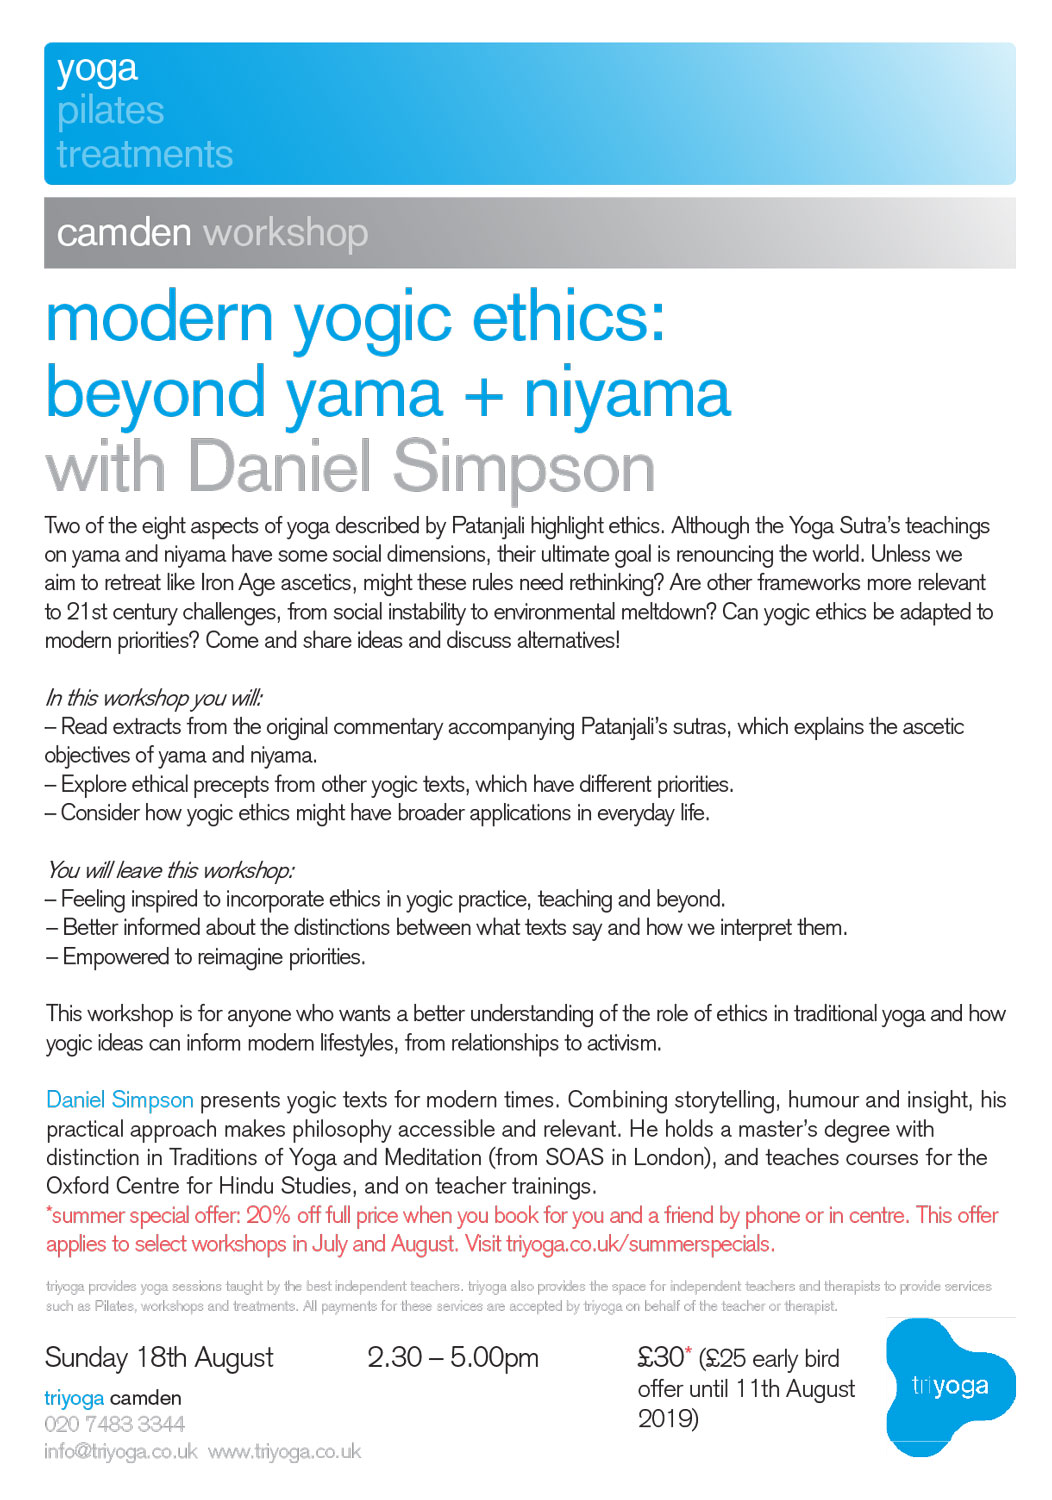 Book now at triyoga.co.uk